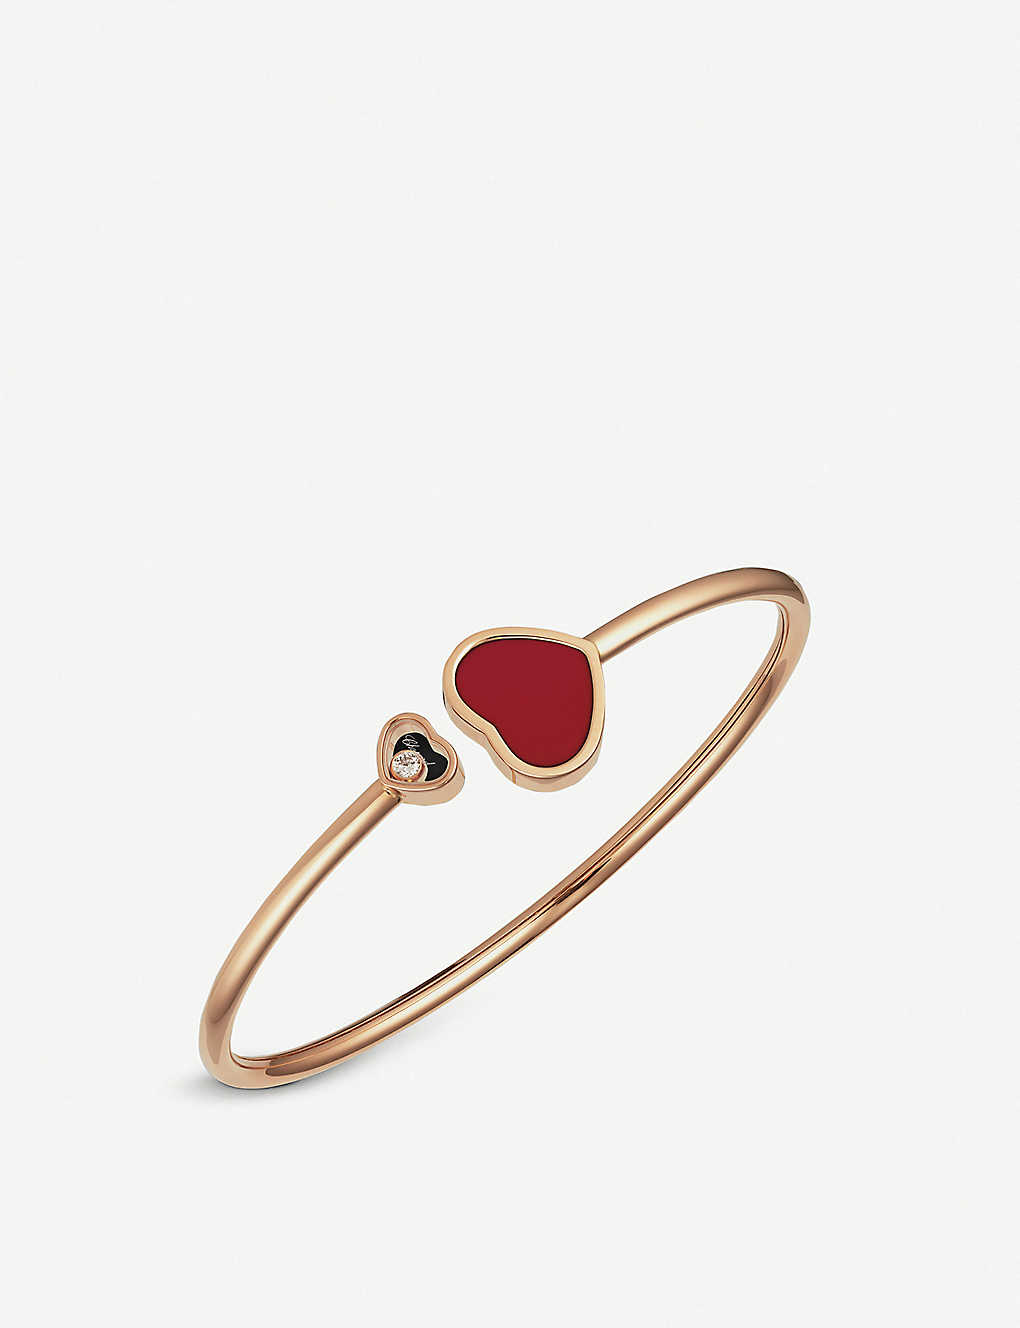 573263f6751e1 Happy Hearts 18ct rose-gold and red stone bangle